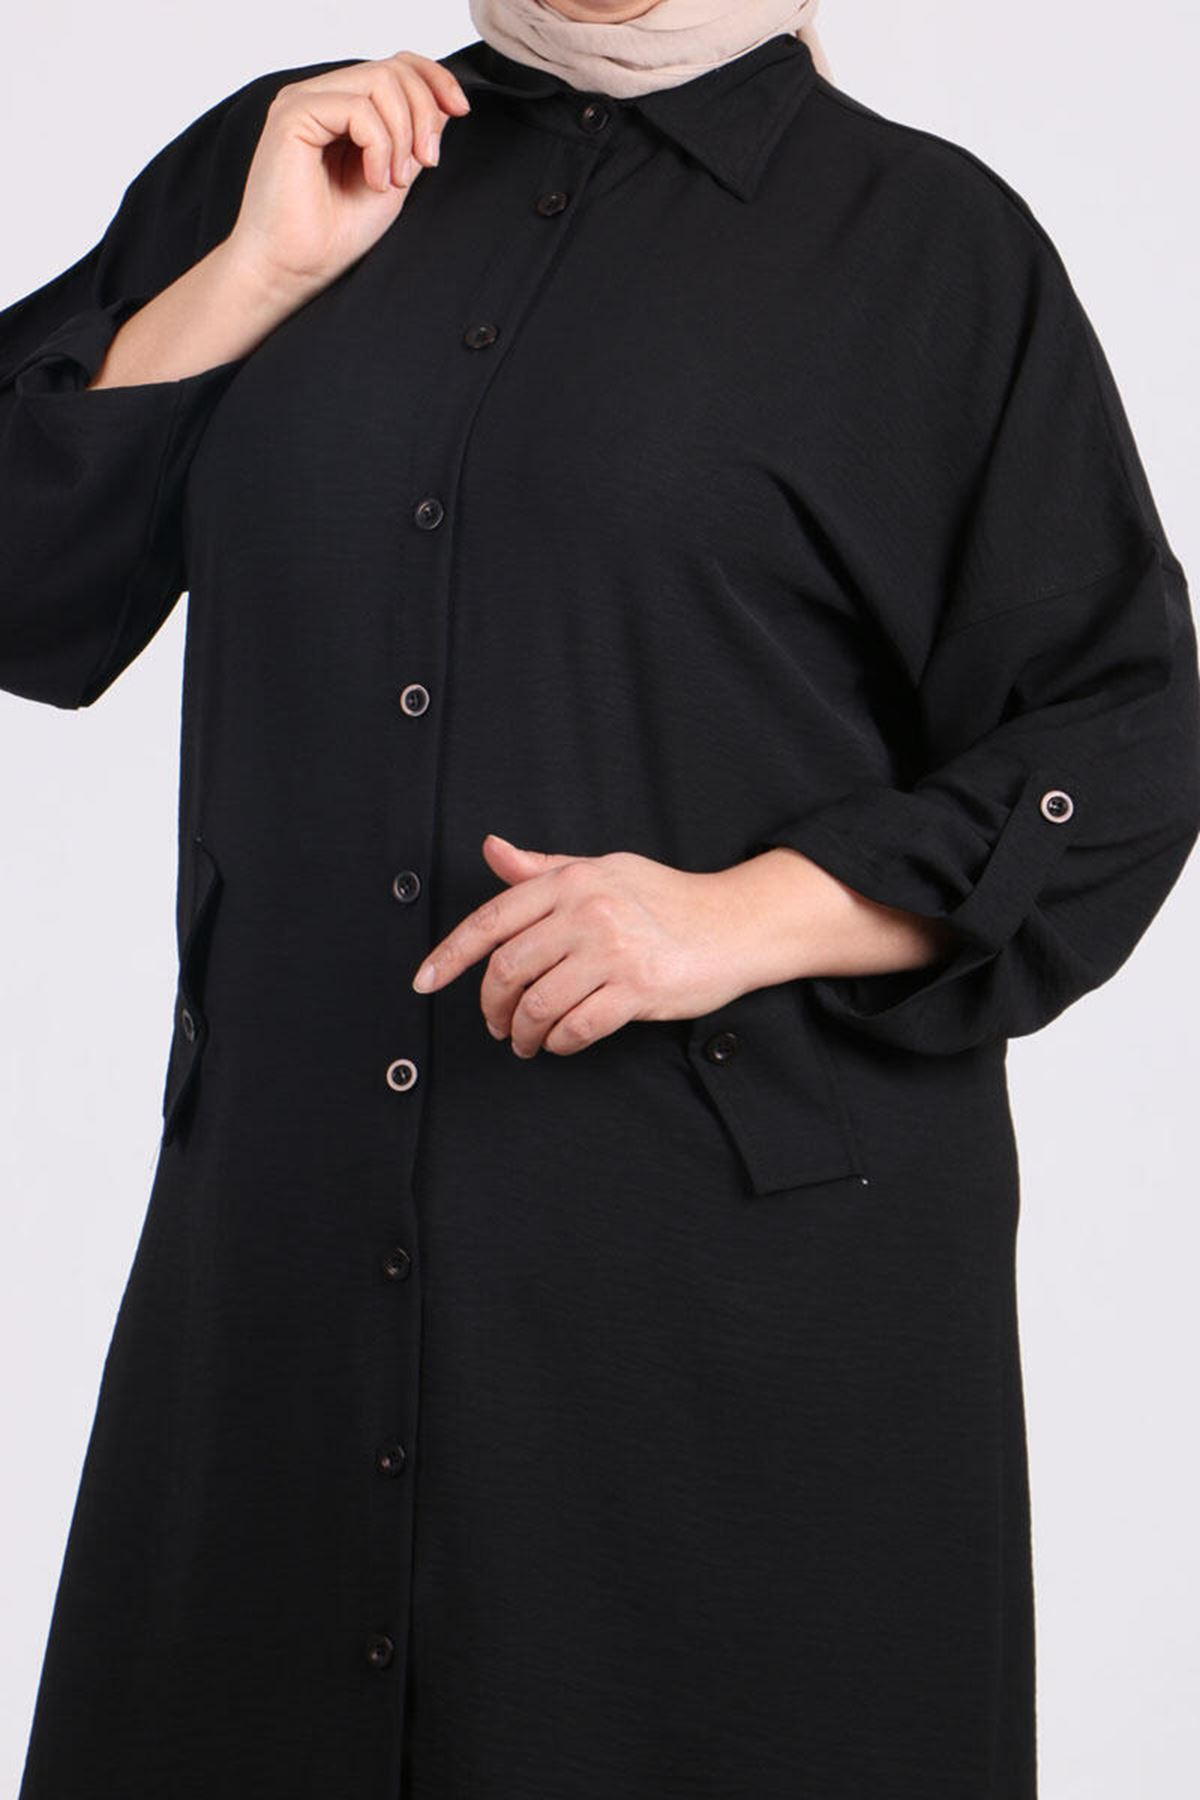 8423 Plus Size Shirt with Low Sleeve - Black